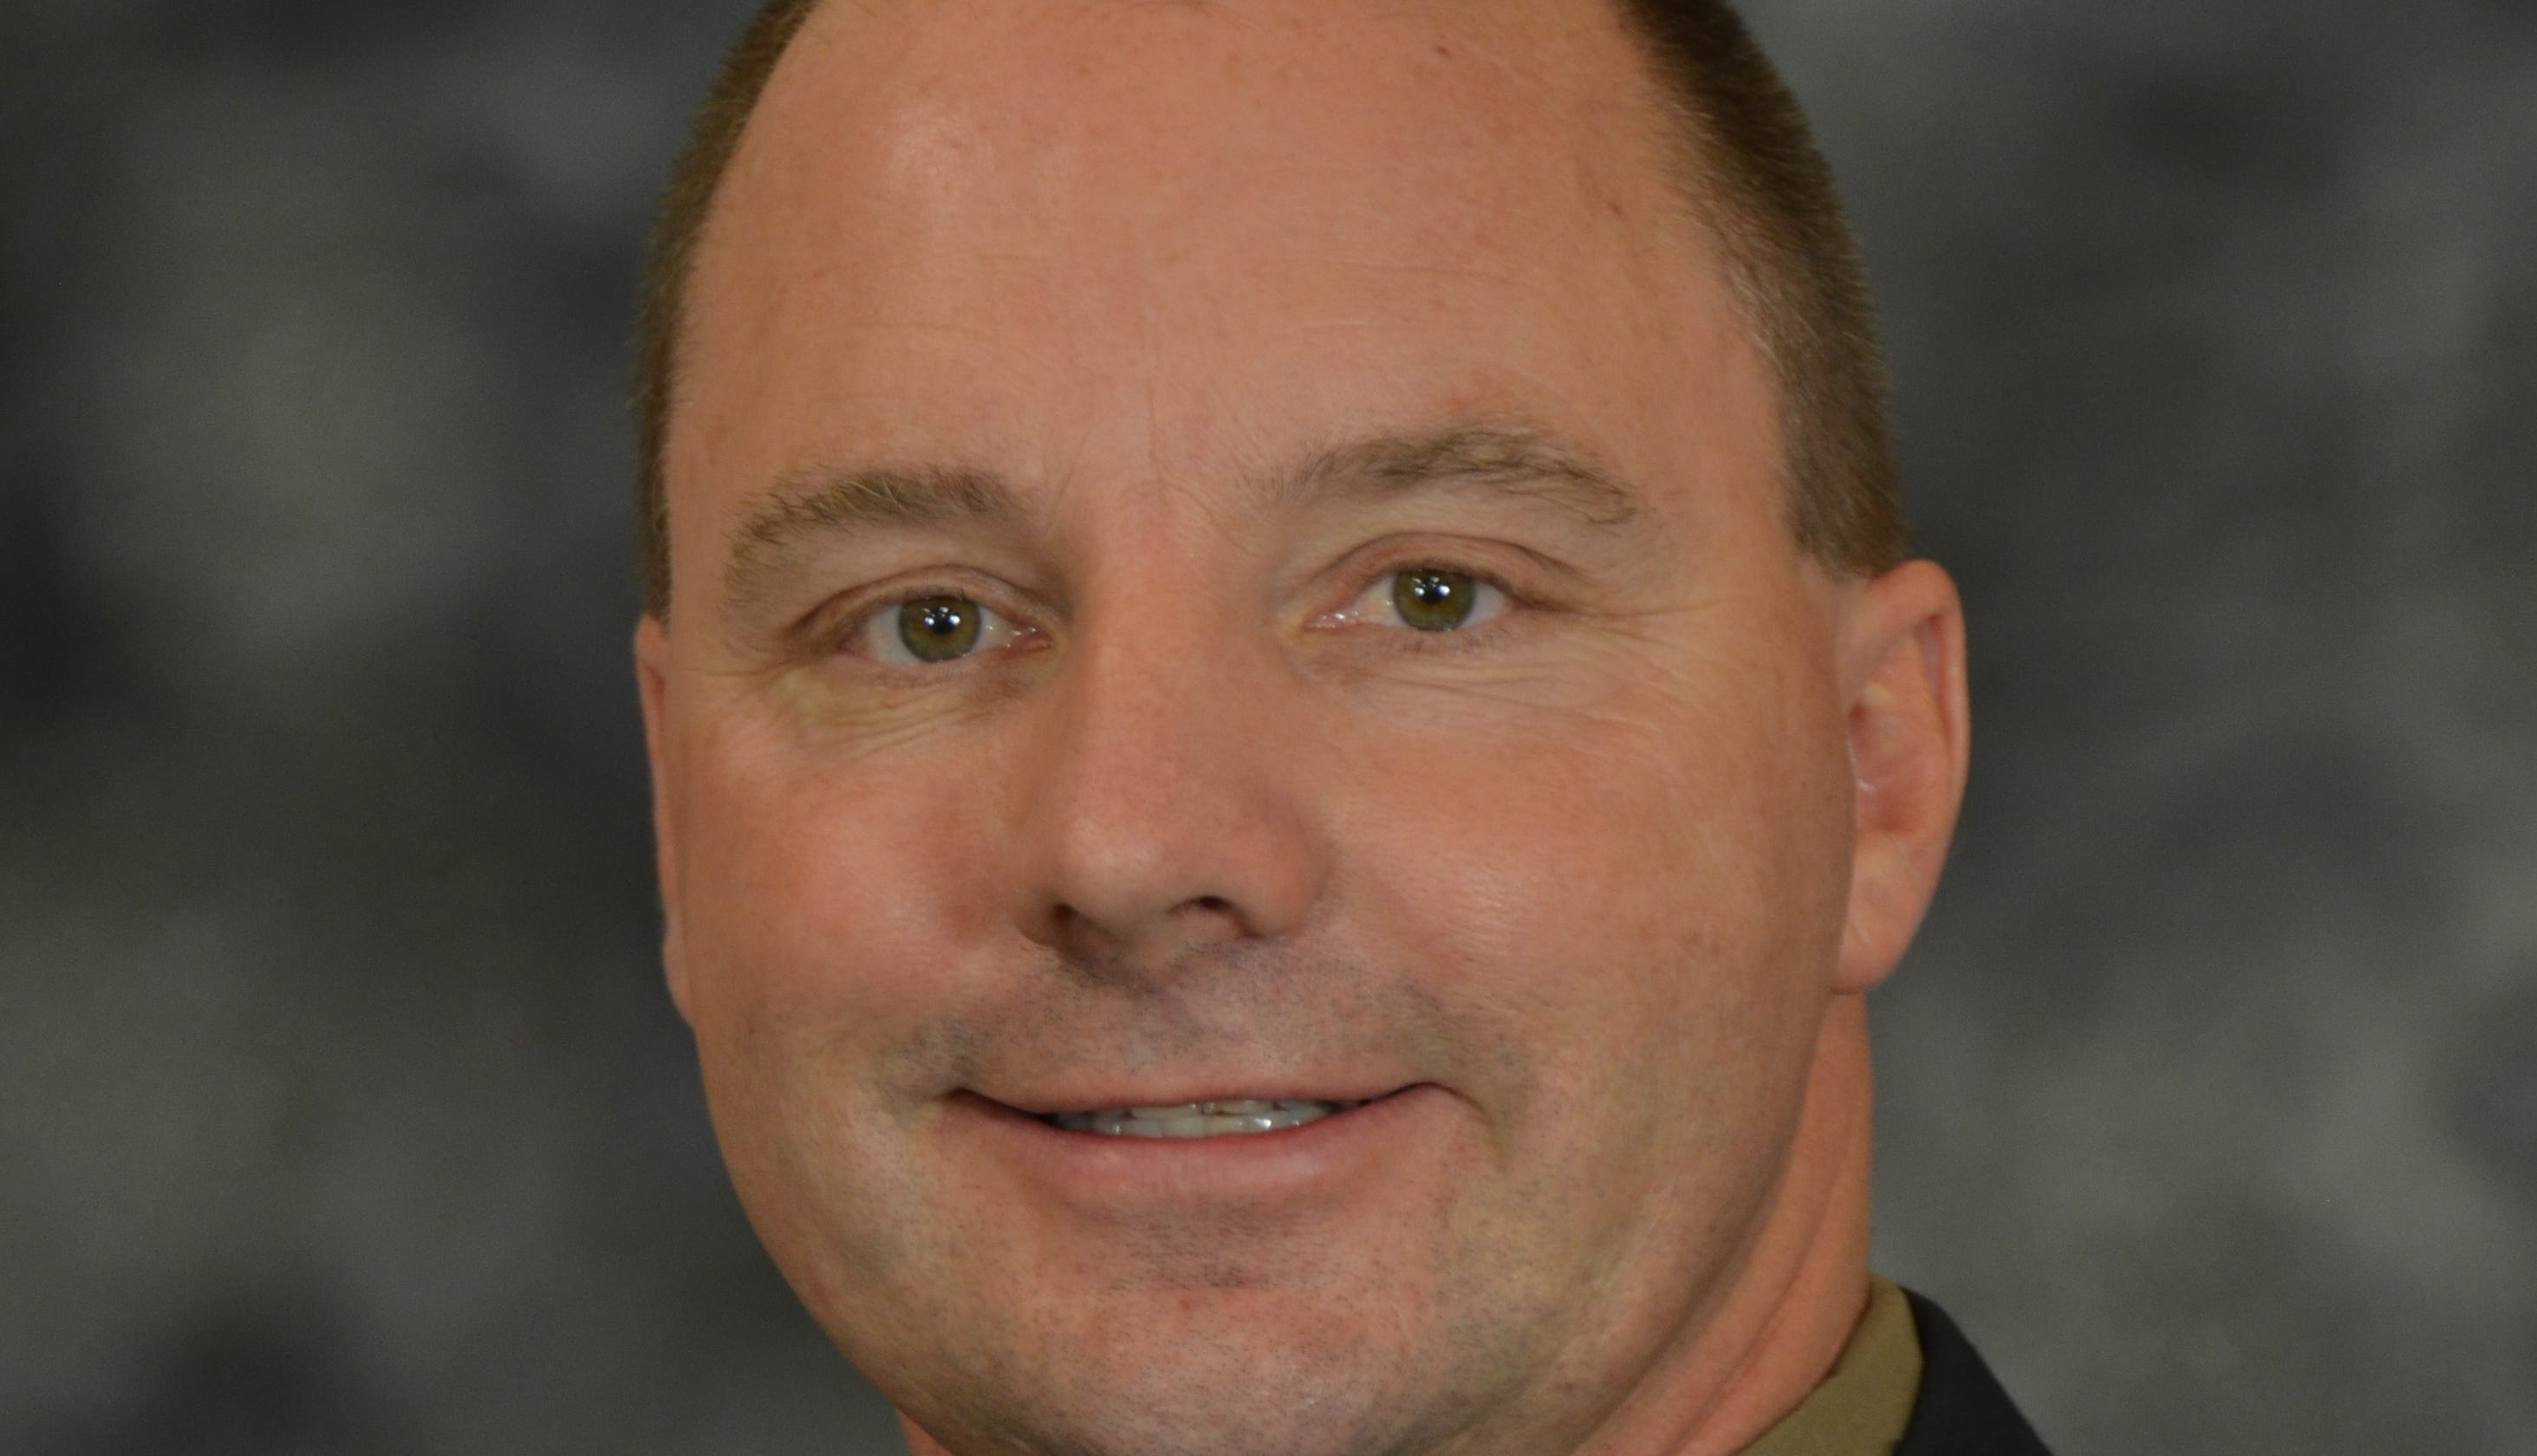 New director hired to oversee 911 operations in Sioux Falls